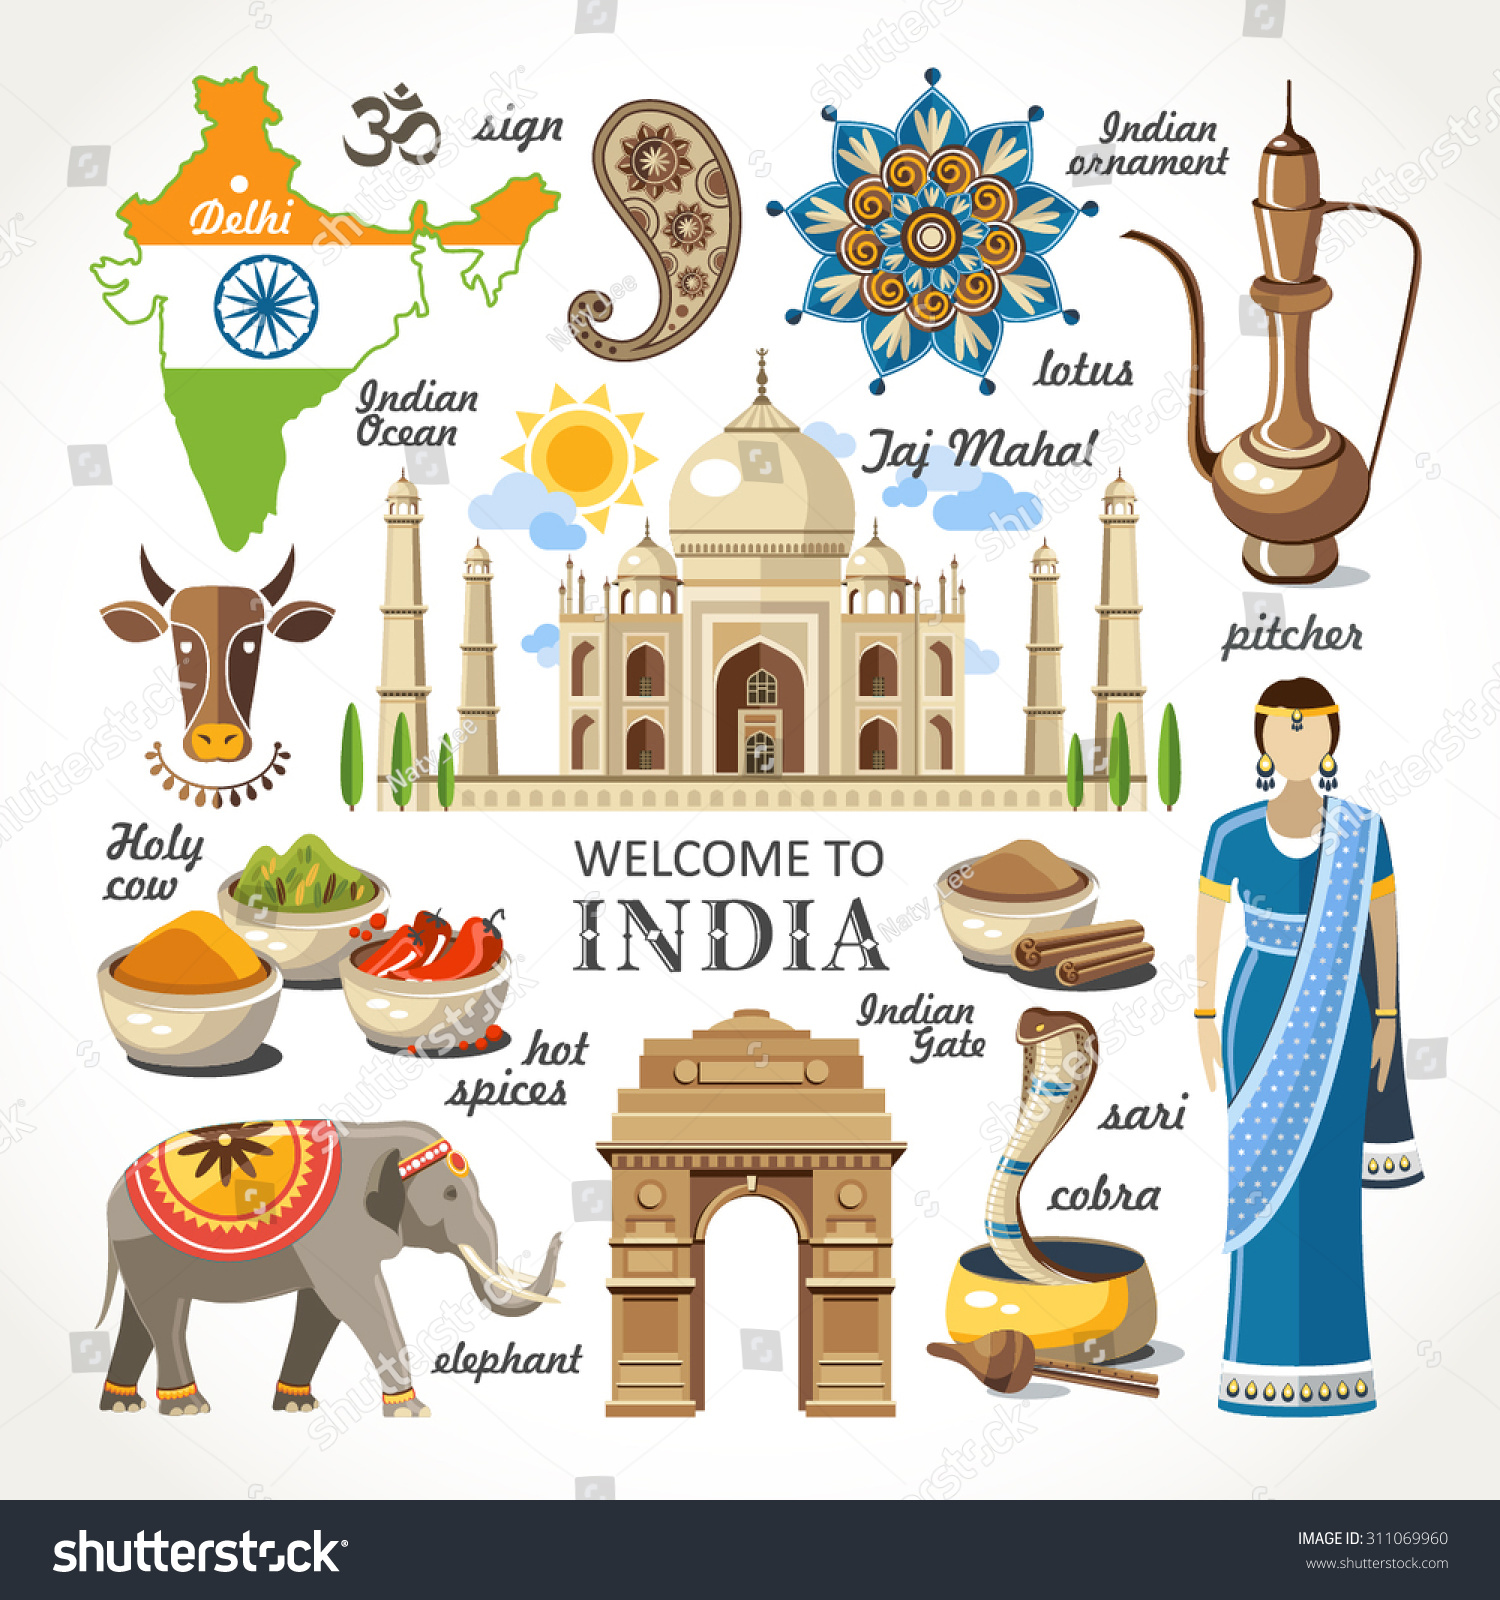 india the country i would like to visit in the future 20 reasons why you should visit india there is no doubt india will have more say in the future of that i like talked to me about her country.